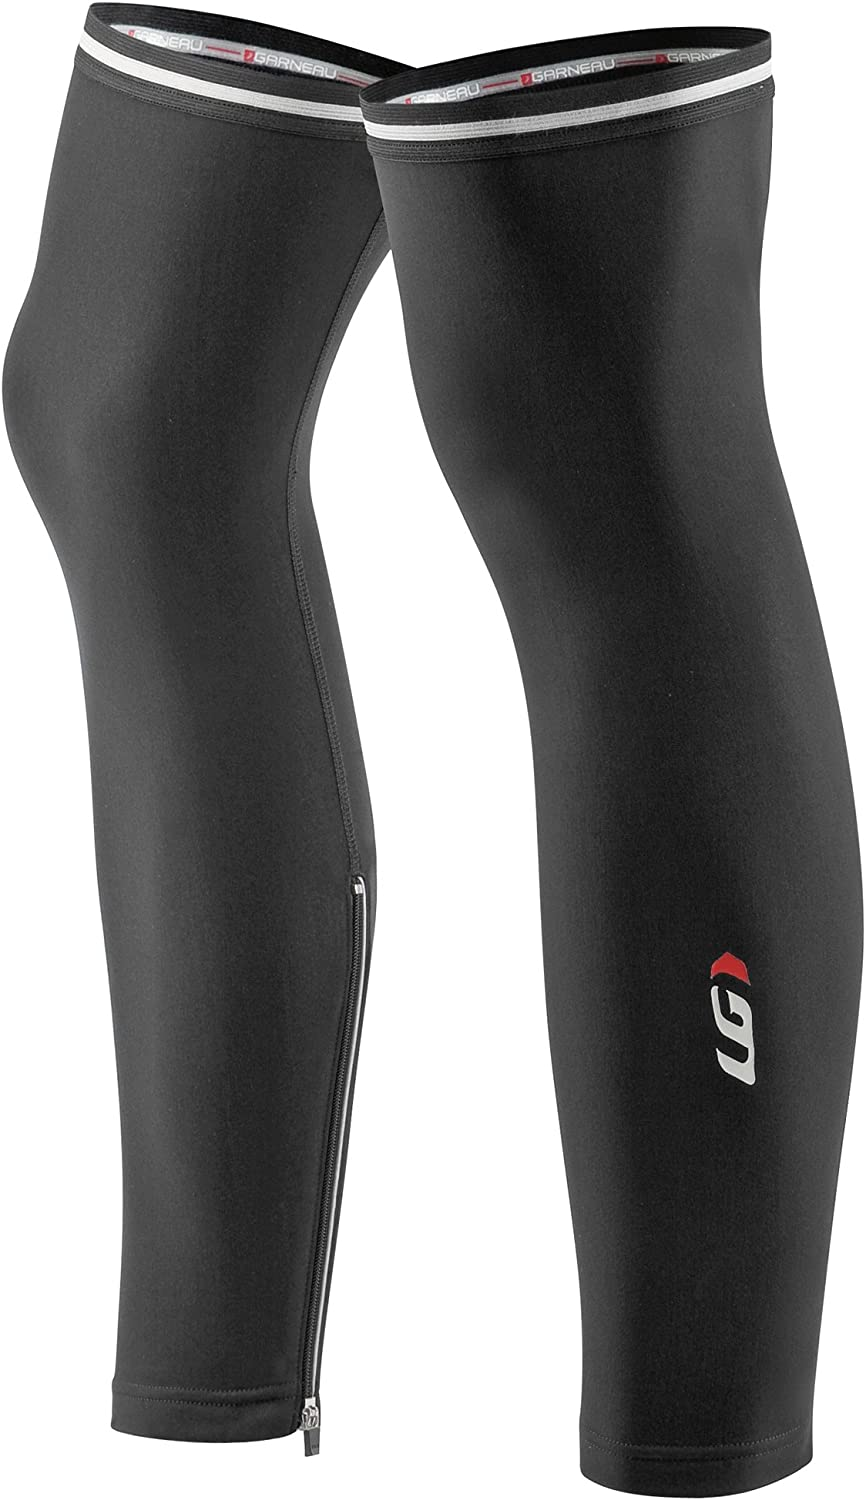 Louis Garneau, Cycling Zip-Leg Warmers 2 : Clothing